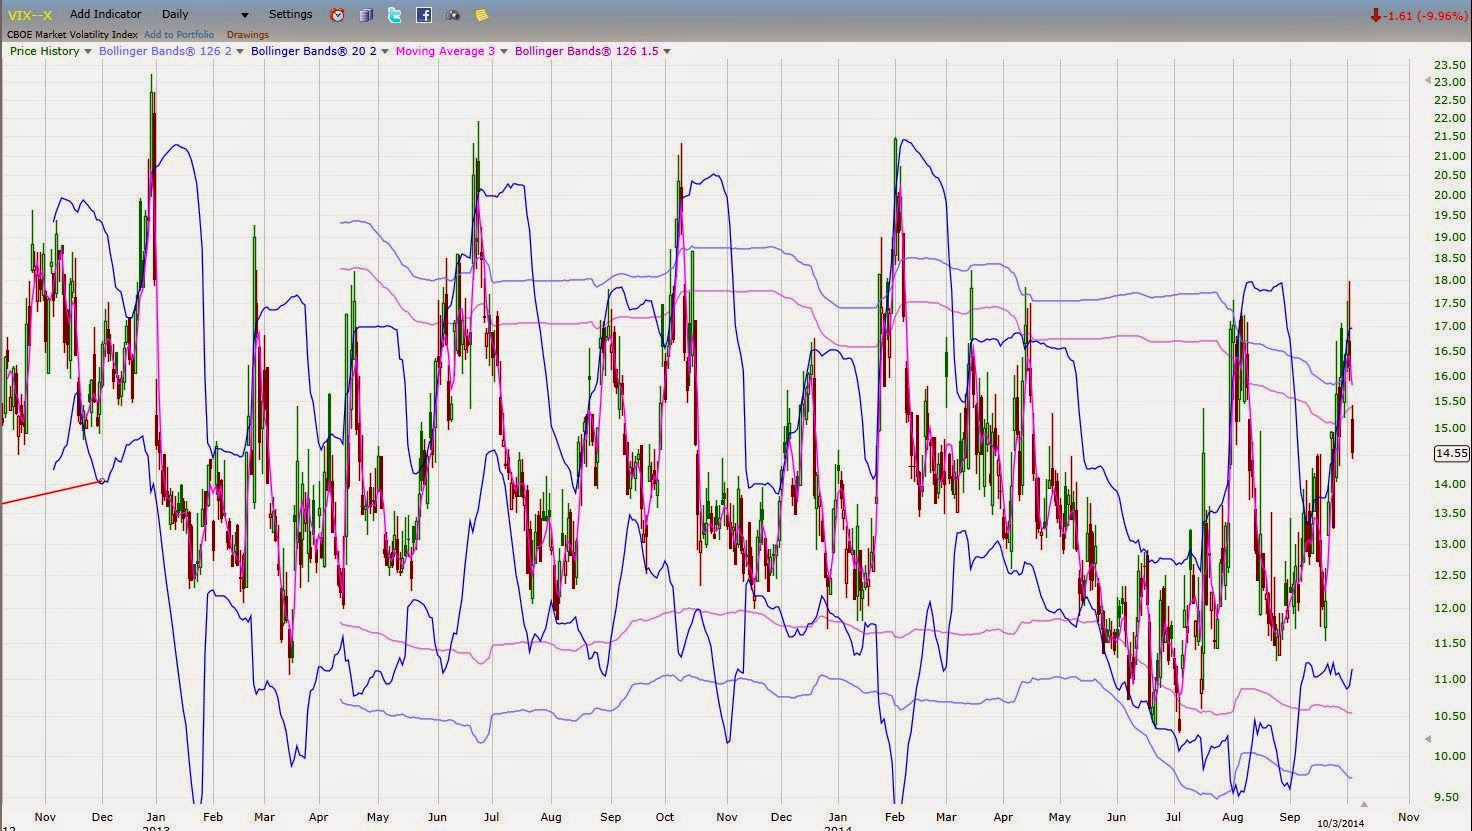 vix 2013-2014 bollinger band analysis